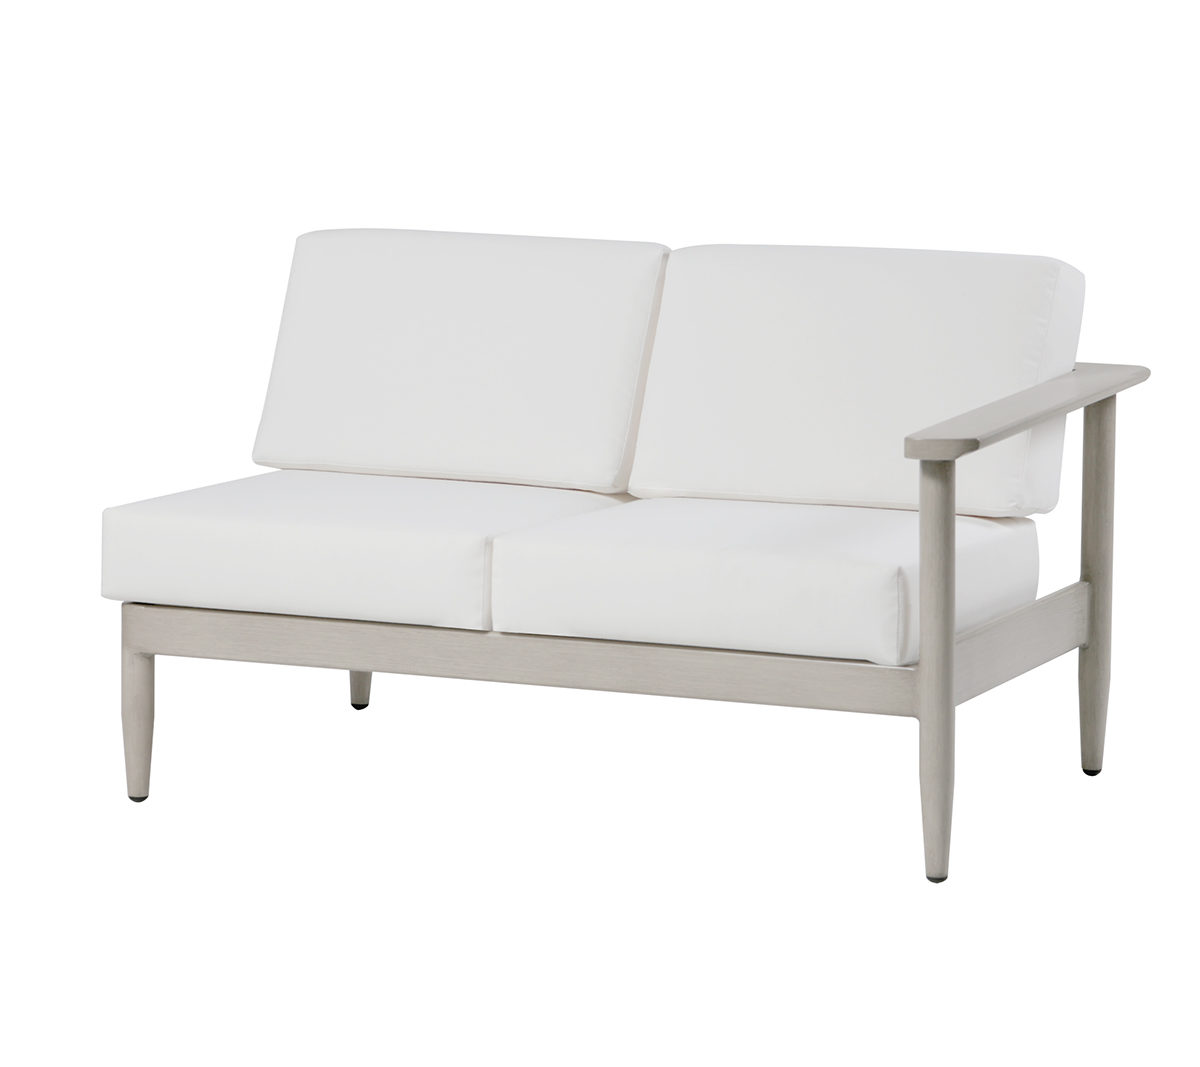 FN58652PRL-R_C Polanco 2-Seater Right Arm